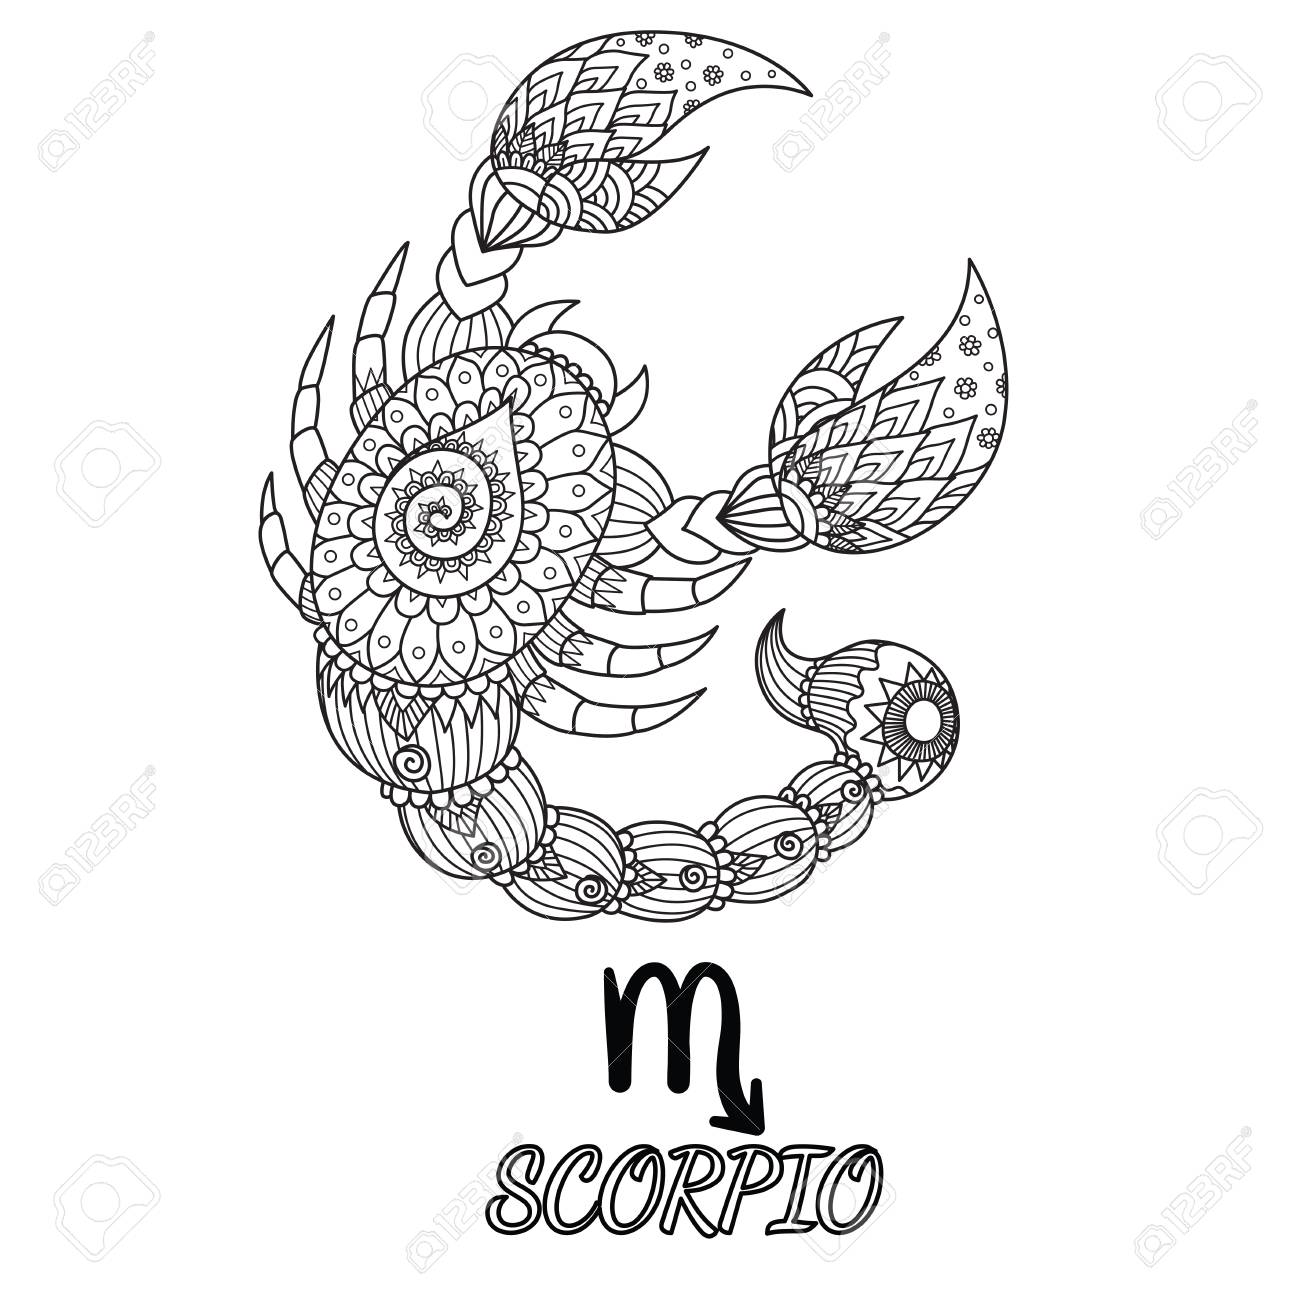 Zen doodle design of Scorpio zodiac sign for design element and adult coloring book page. Stock Vector - 92827655